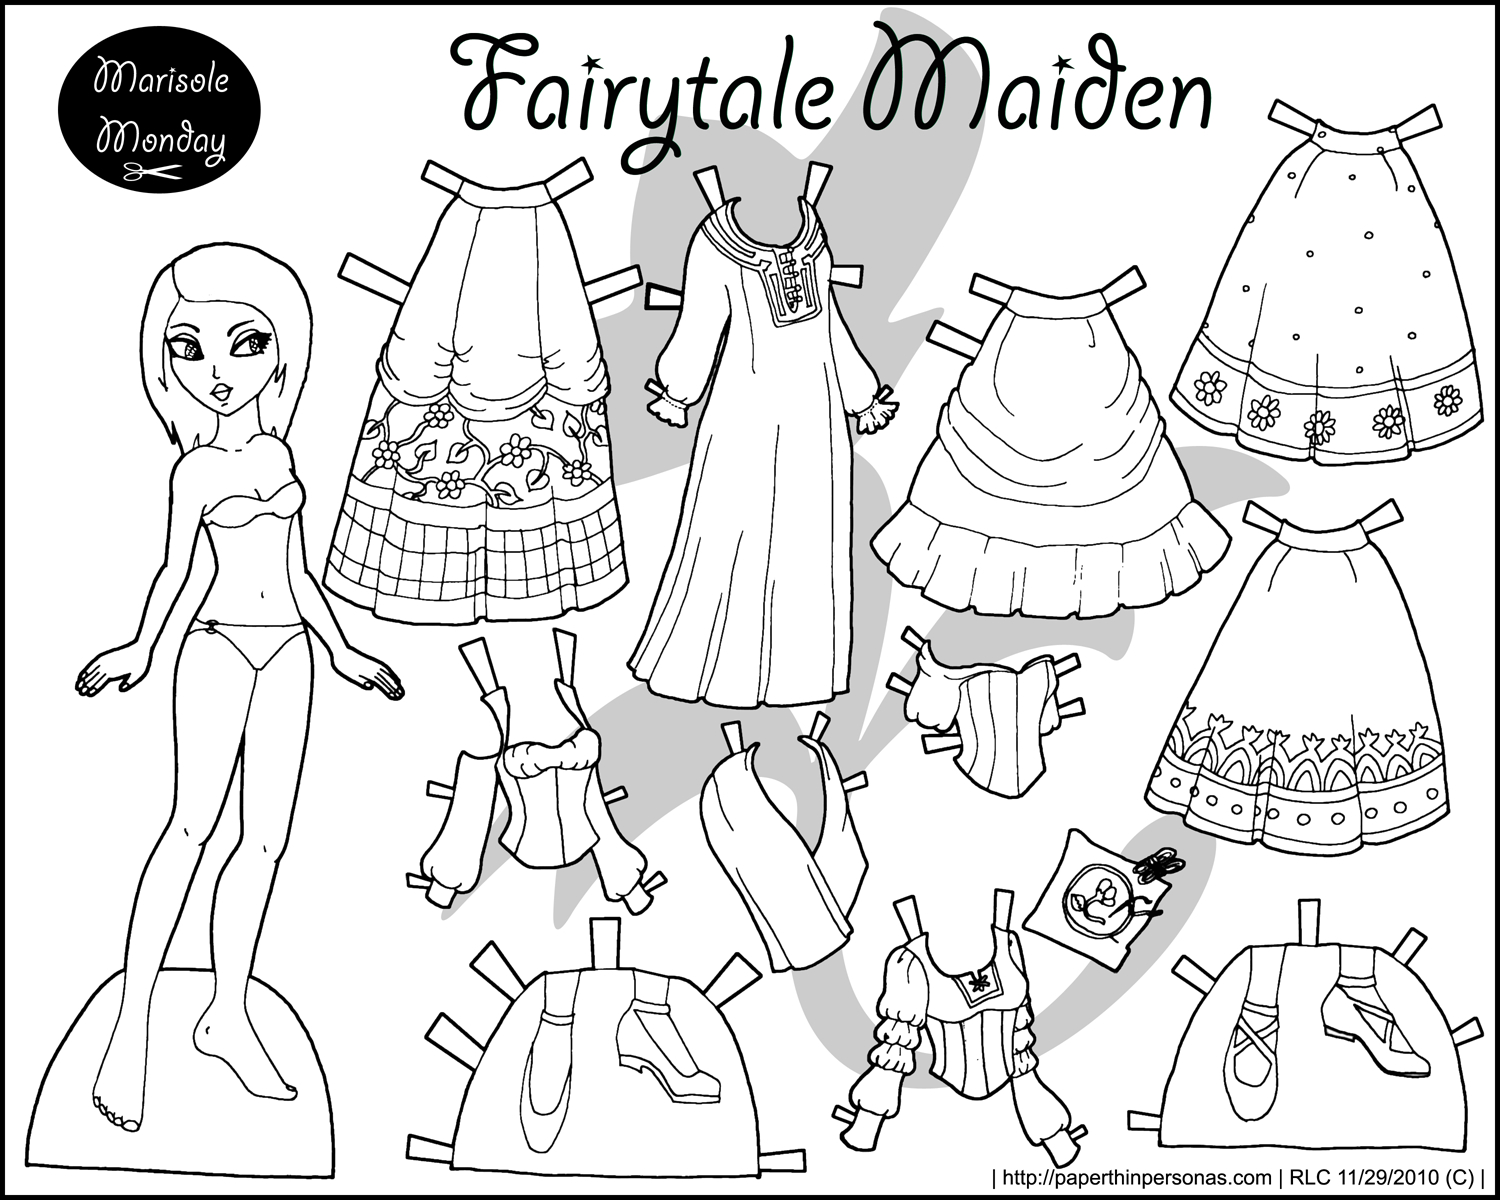 Four Princess Coloring Pages To Print & Dress - Free Printable Paper Doll Coloring Pages